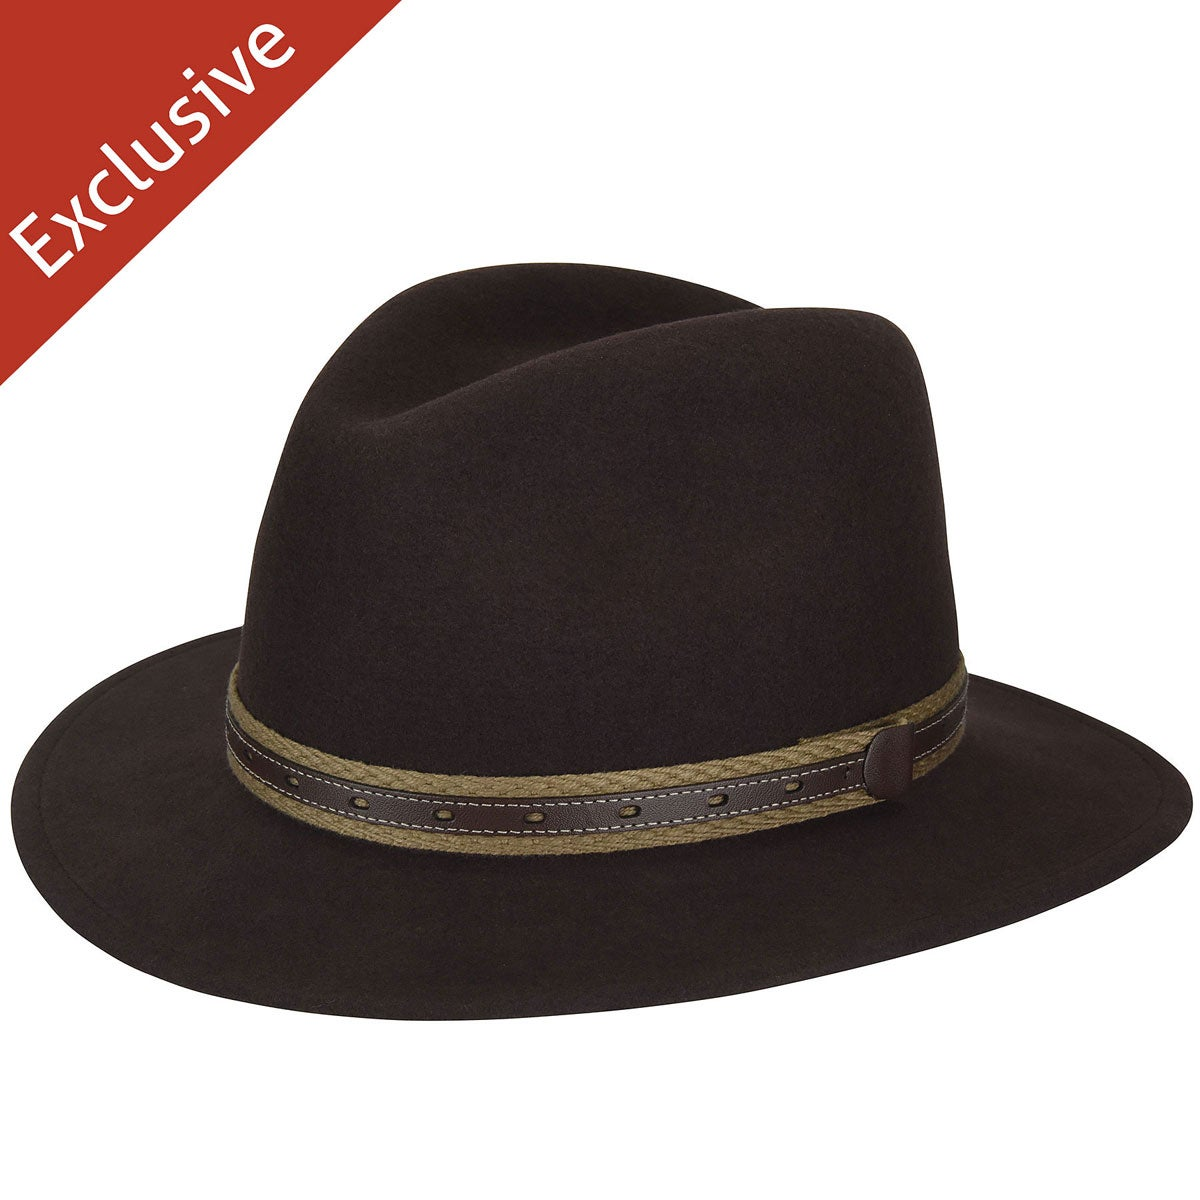 60s , 70s Hippie Clothes for Men Quest Safari Fedora - Exclusive $39.99 AT vintagedancer.com